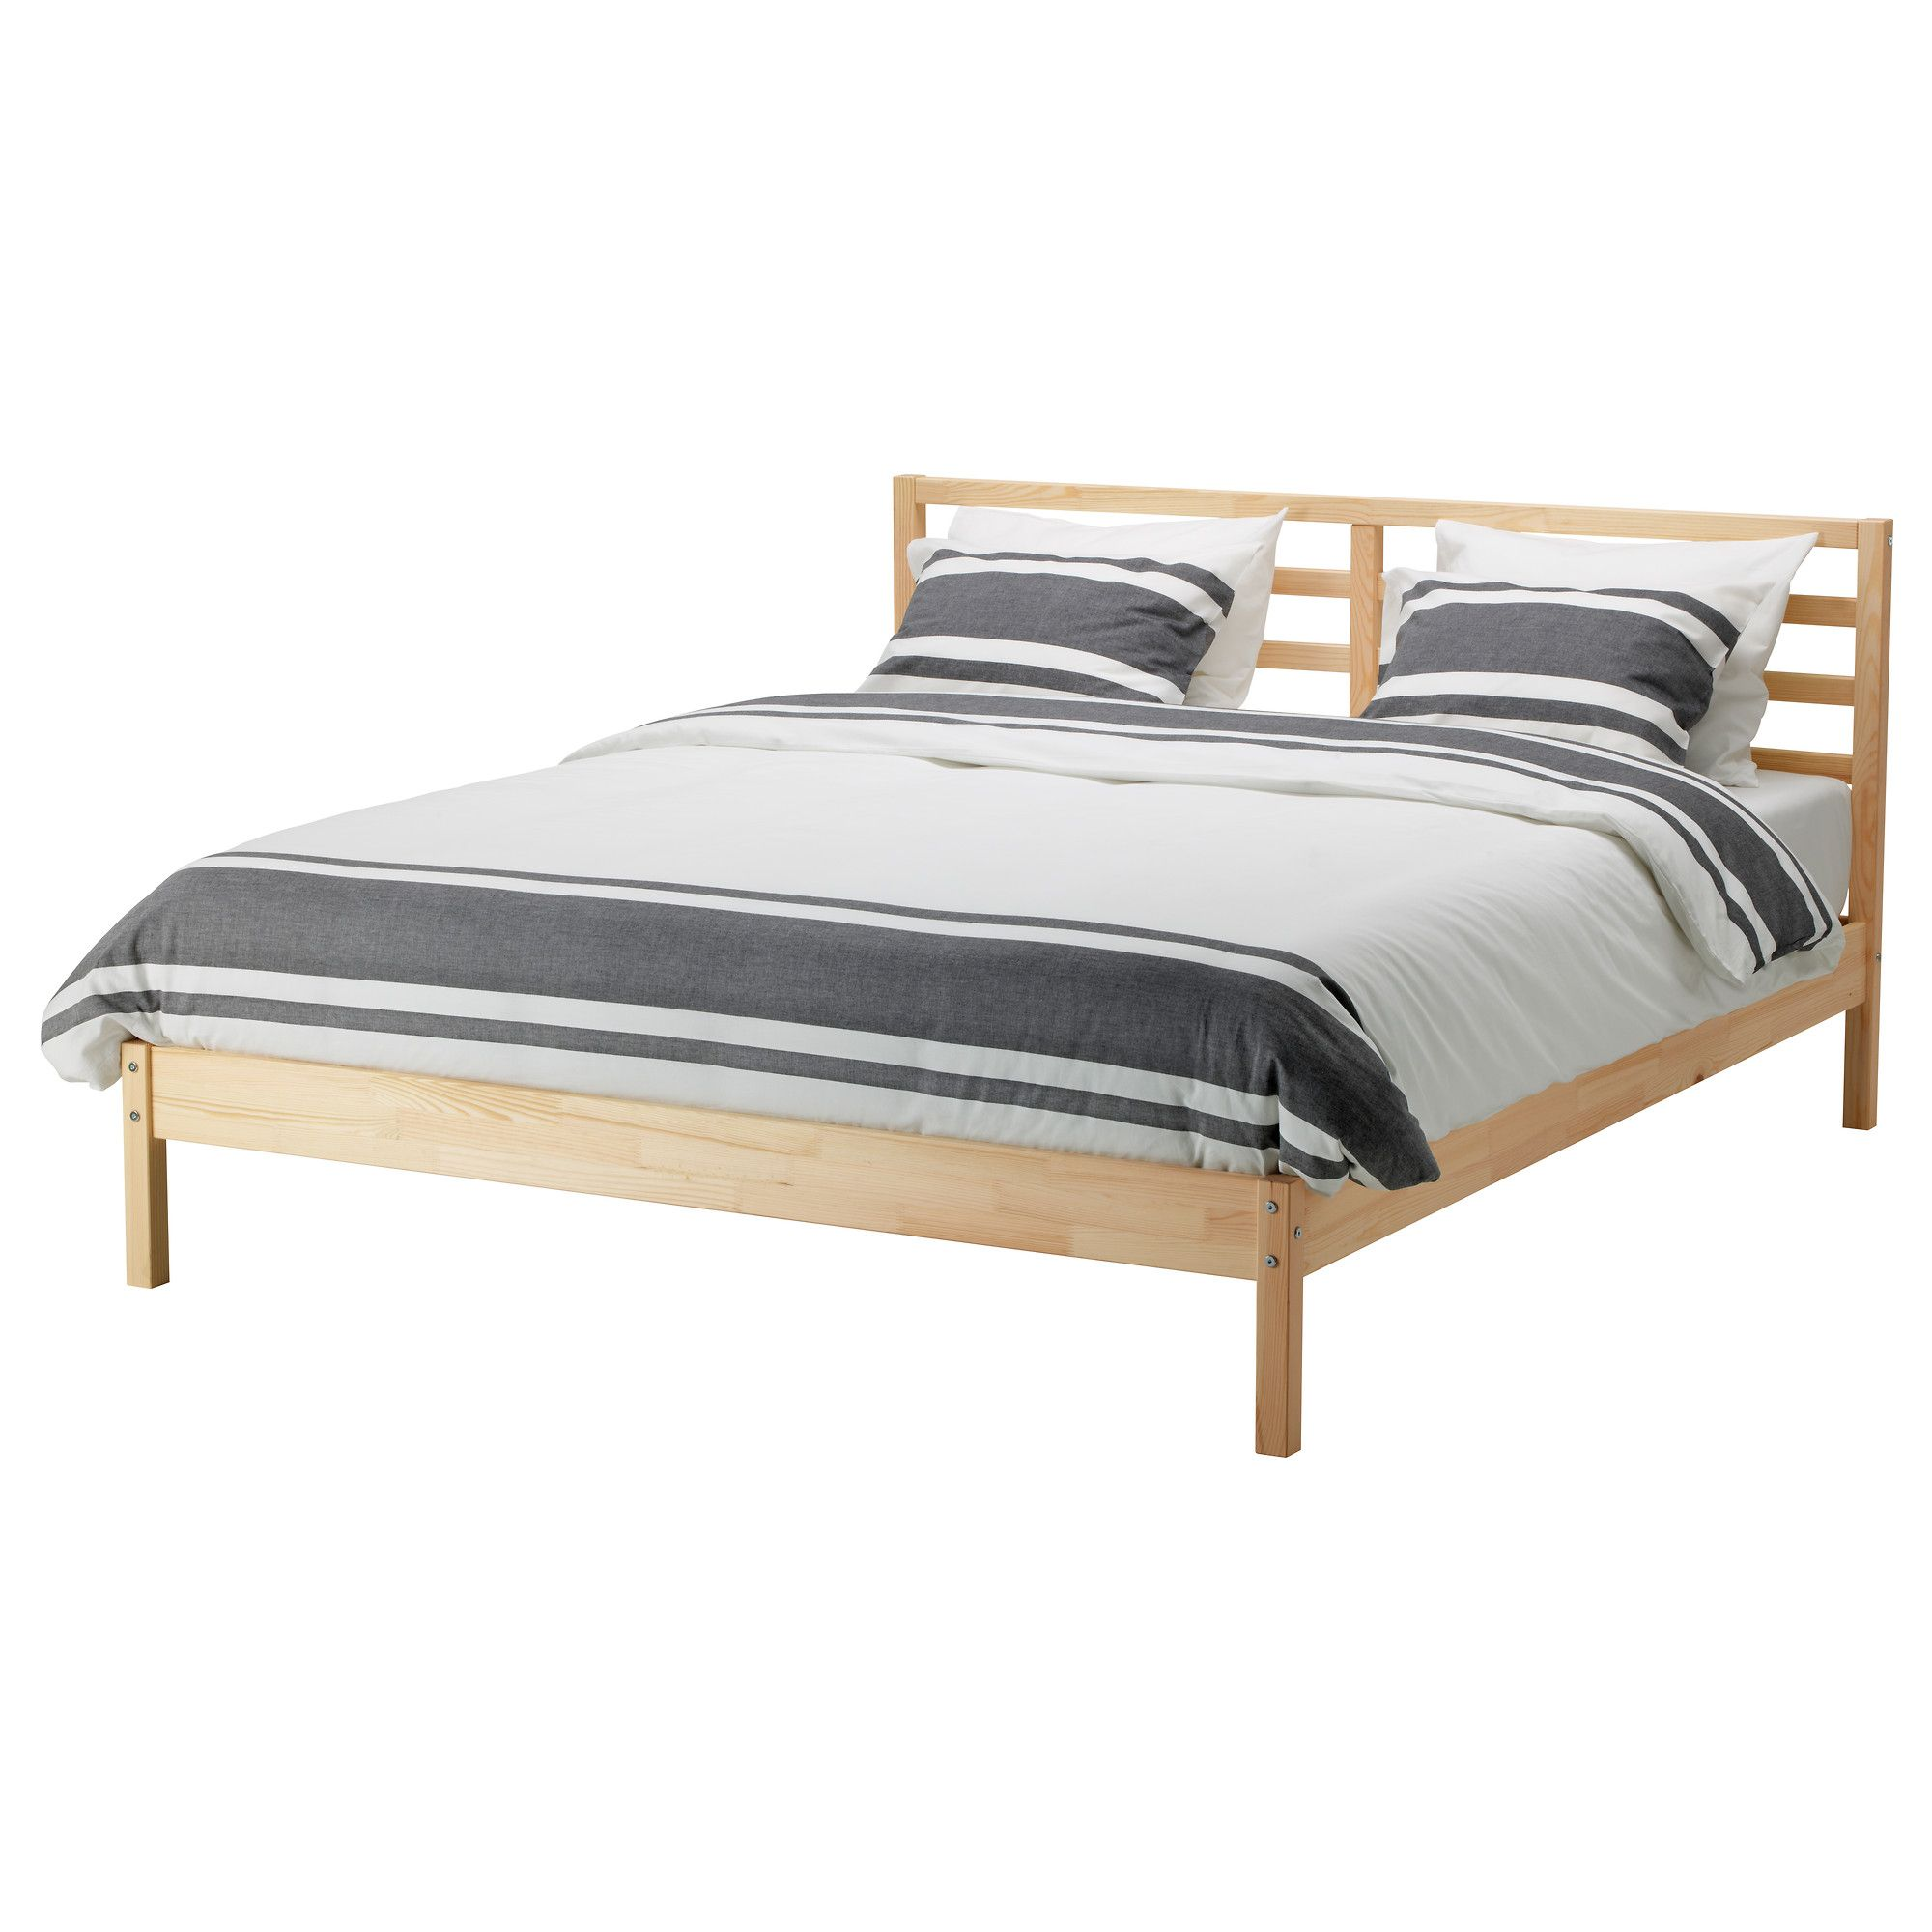 Simple bed frame design - Tarva Bed Frame Pine